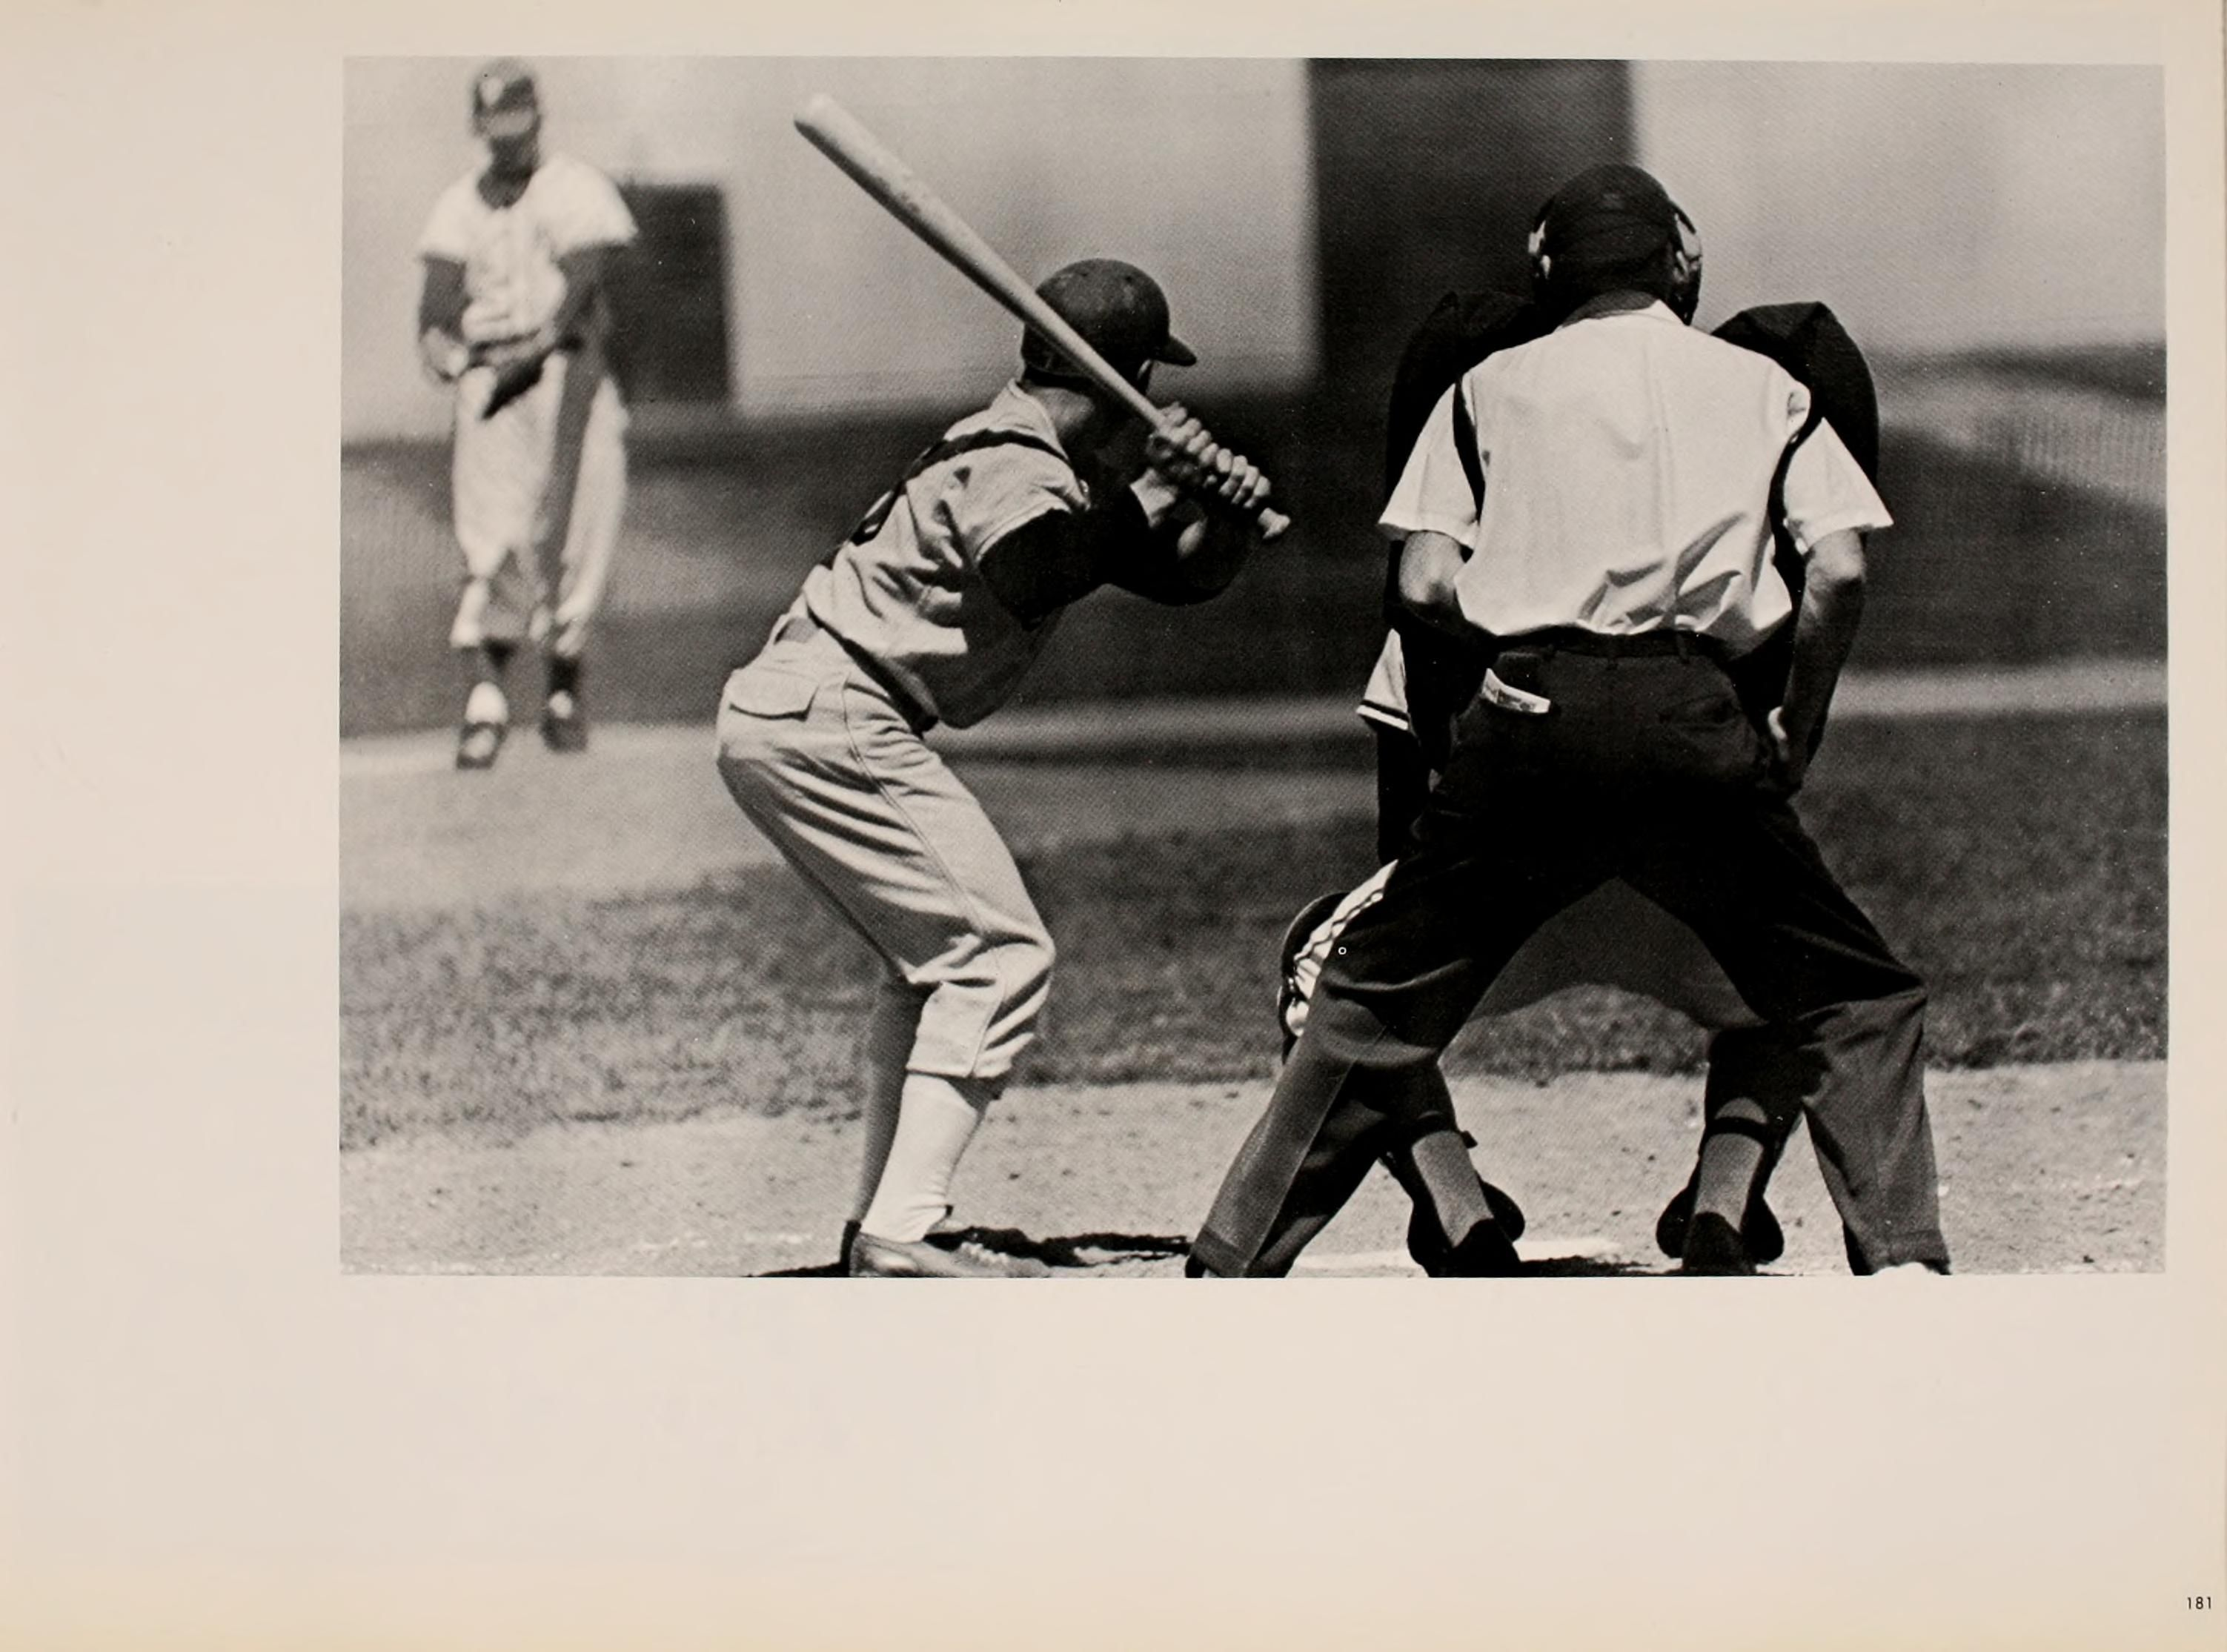 Athena Yearbook 1964 Men S Baseball Batter Shown From Behind The